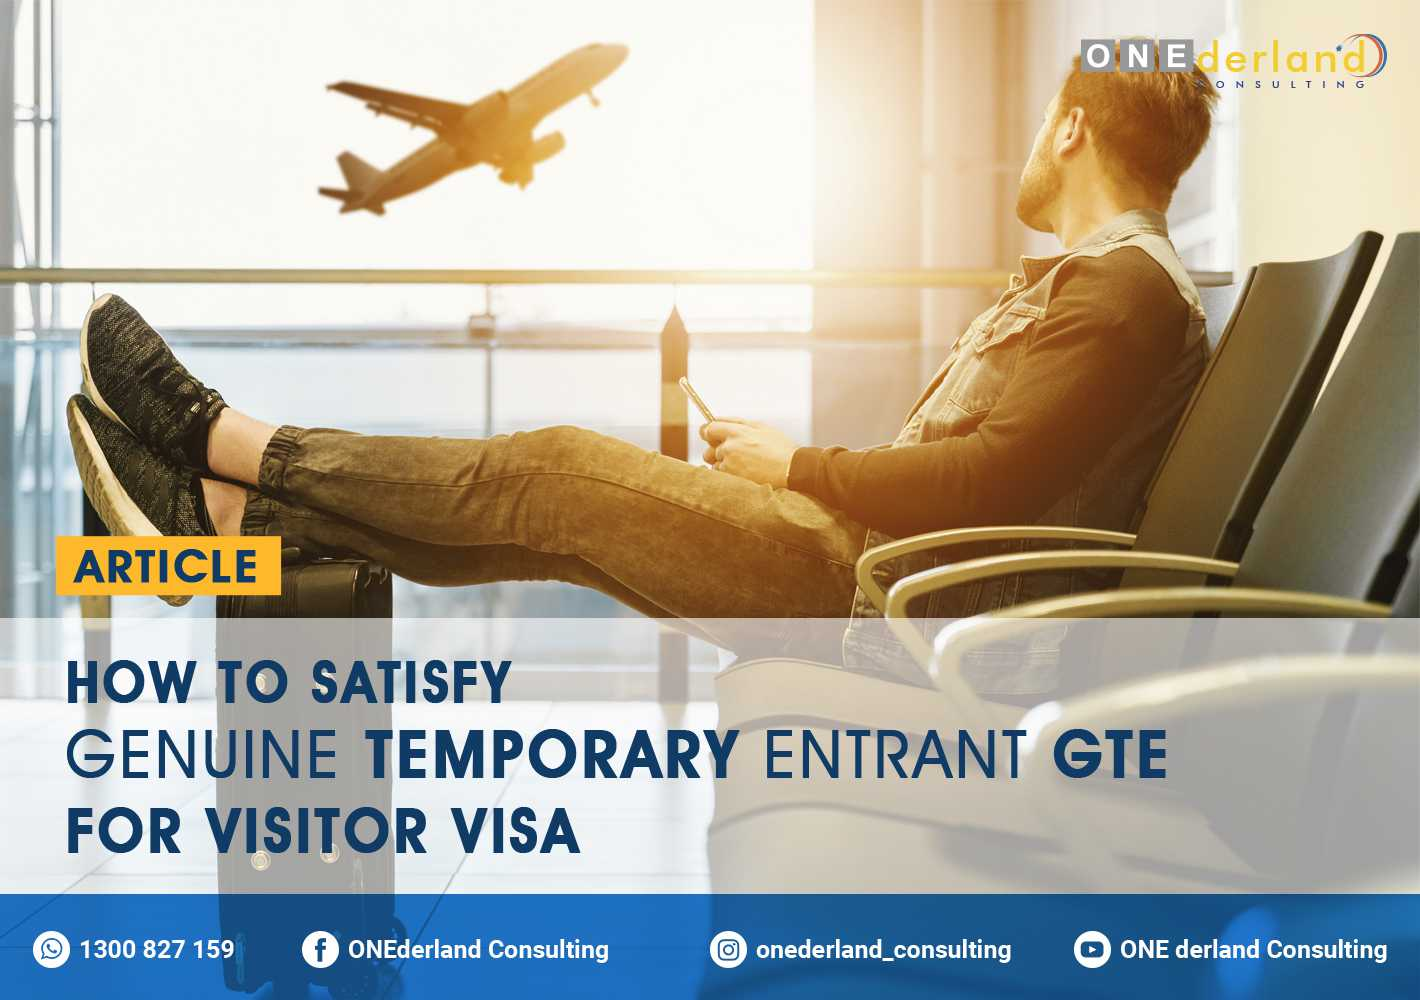 How to Satisfy Genuine Temporary Entrant GTE for Visitor Visa